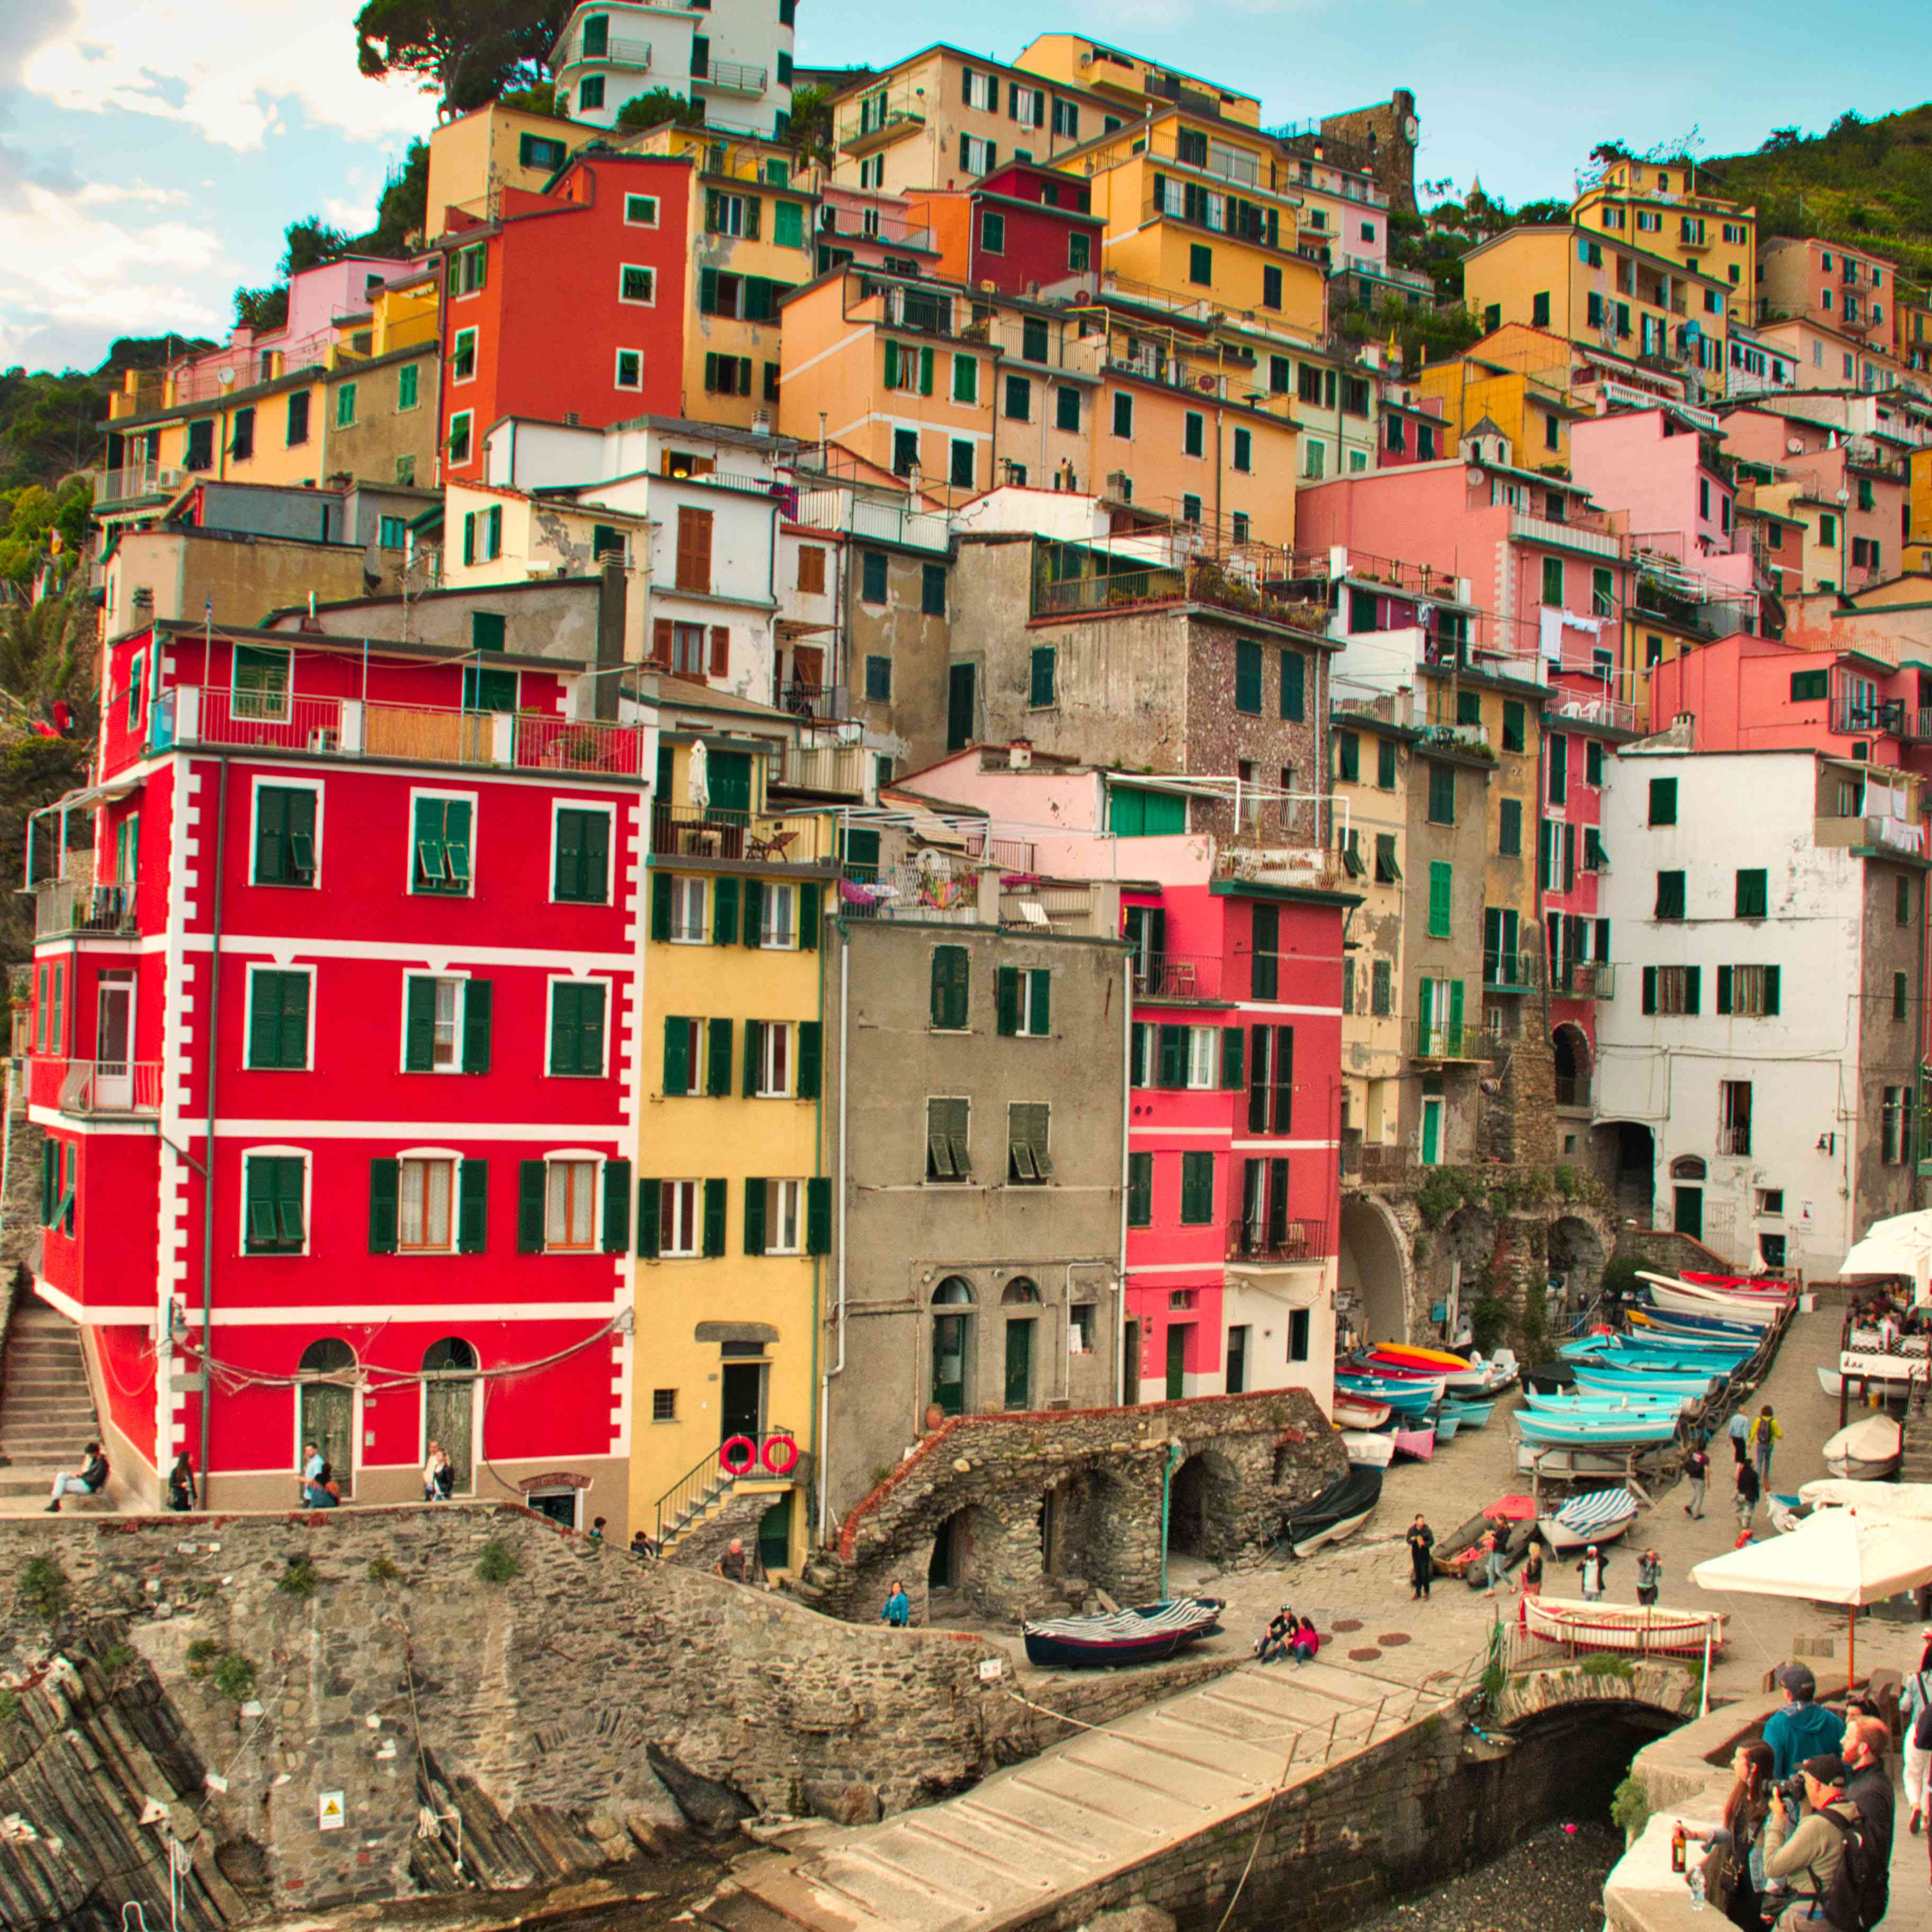 Colorful buildings on the edge by the water in the Gulf of Poets